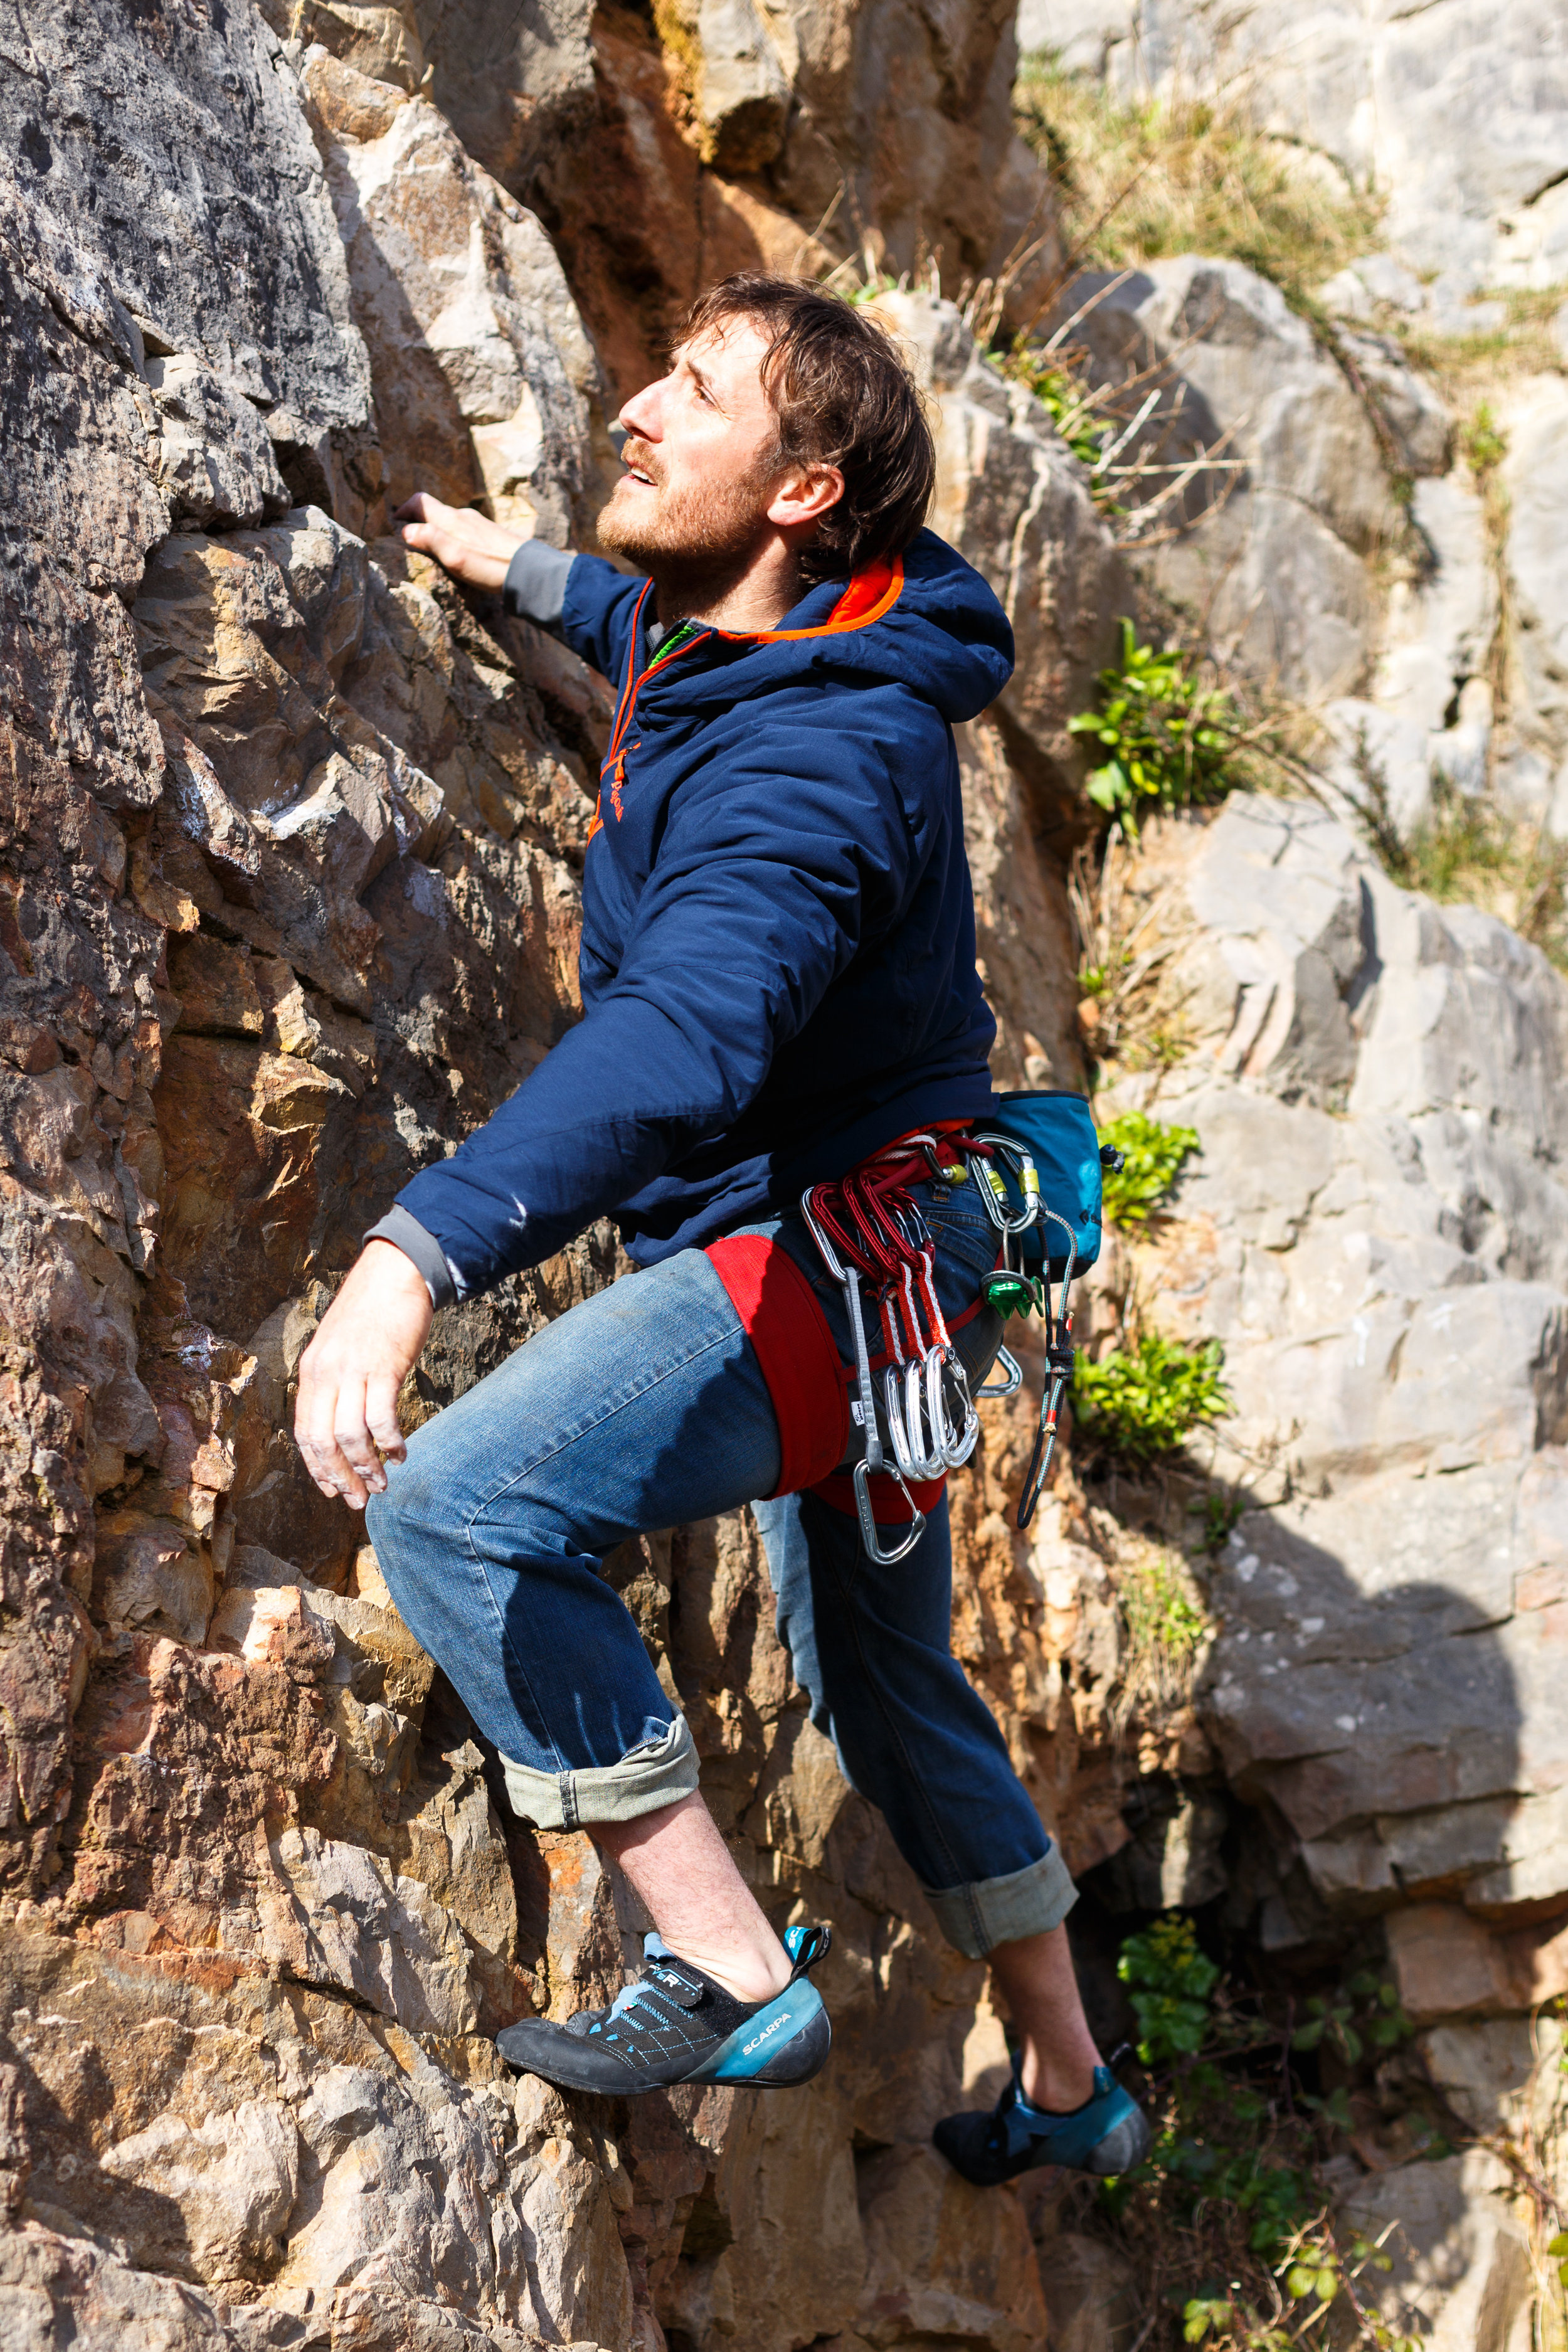 Harvey in Wales - learn to climb with someone who is patient and calm